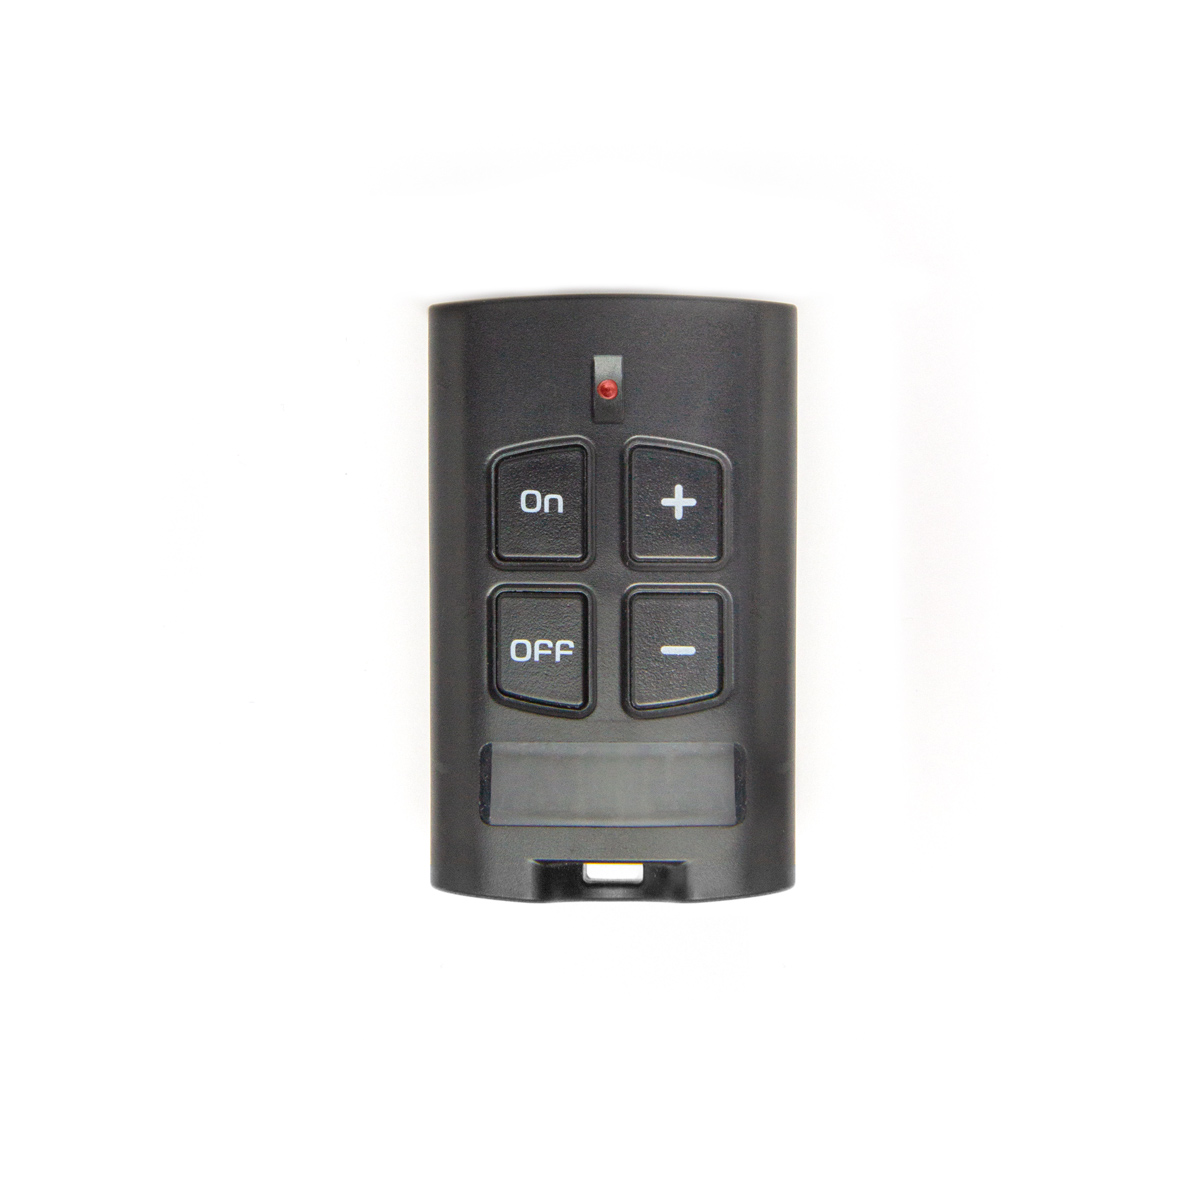 black 4-button radio control for stove and boiler management